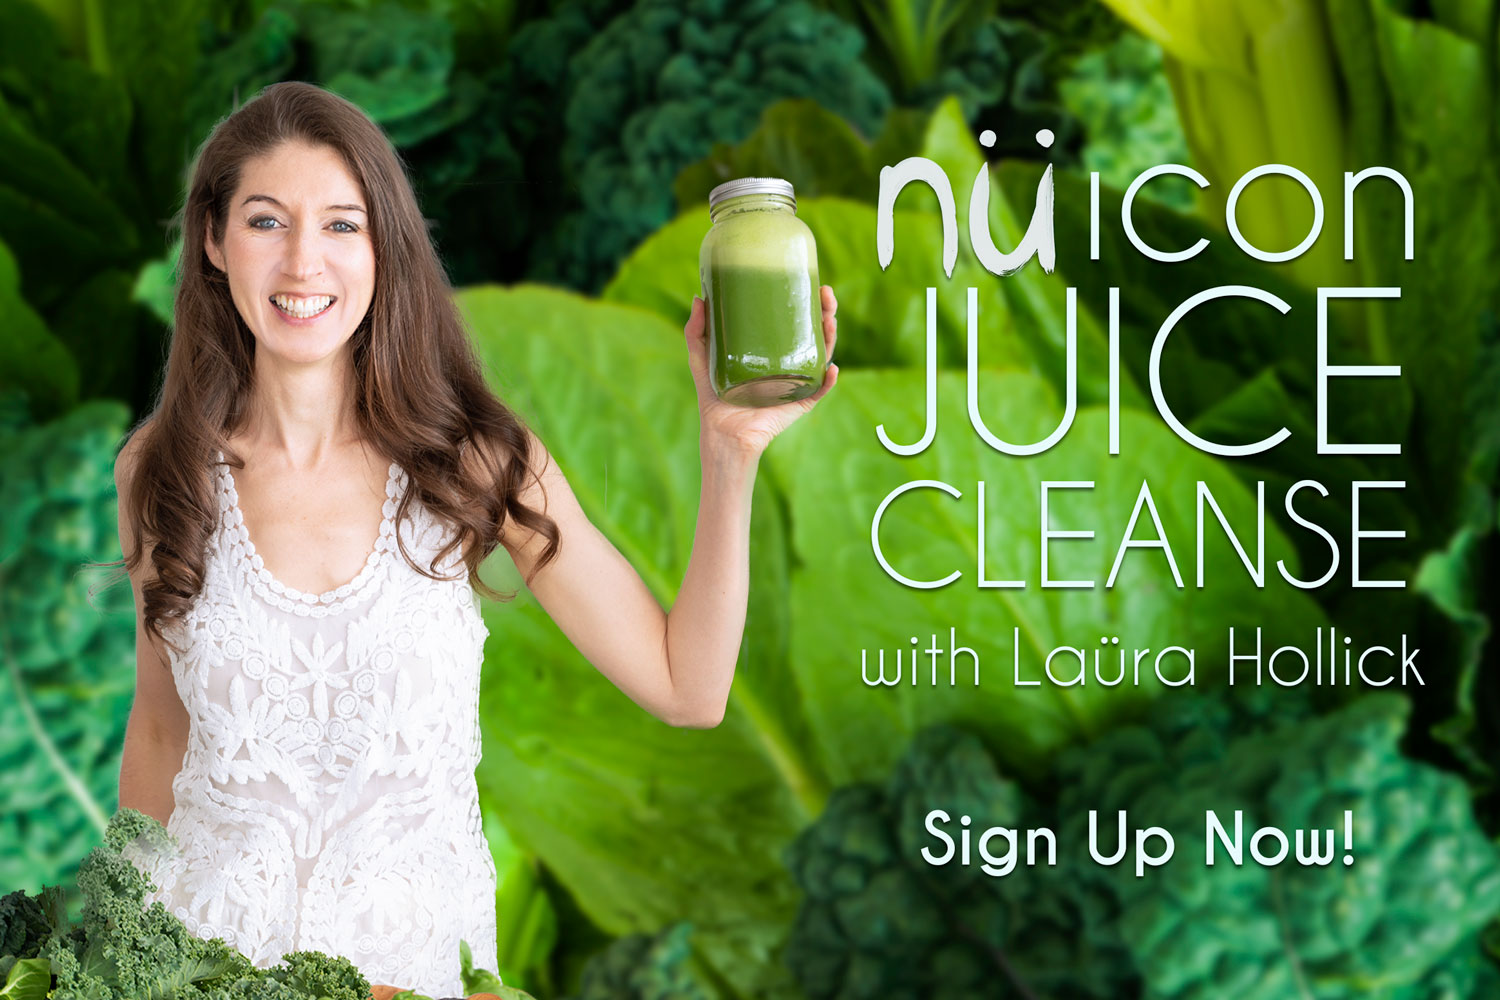 nü Icon Juice Cleanse - Sign Up Now!